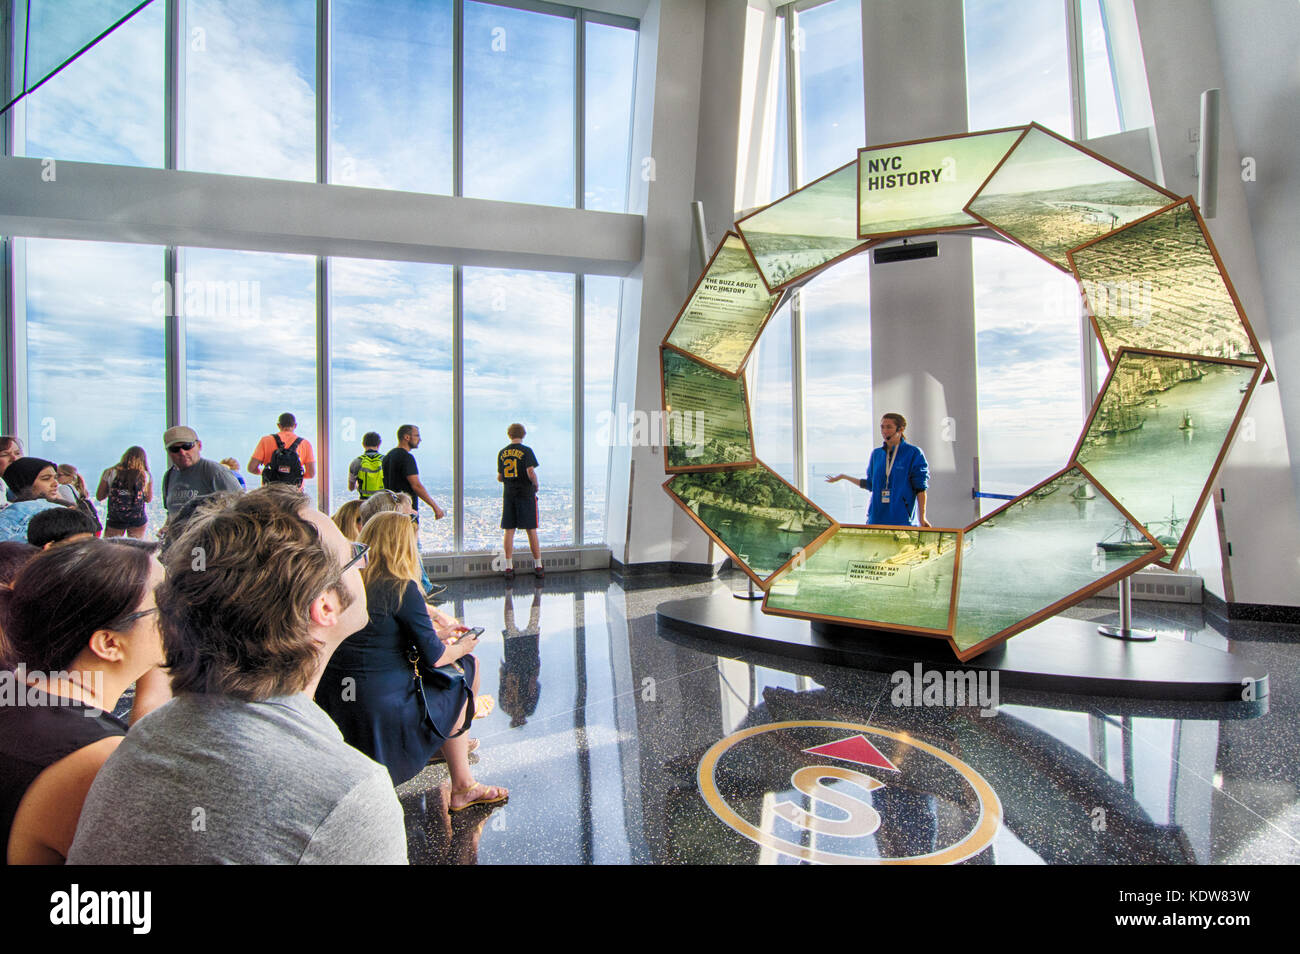 A tour guide educates visiting tourists on the history of New York city at One World Observatory, at the World Trade Center, New York, NY, USA Stock Photo